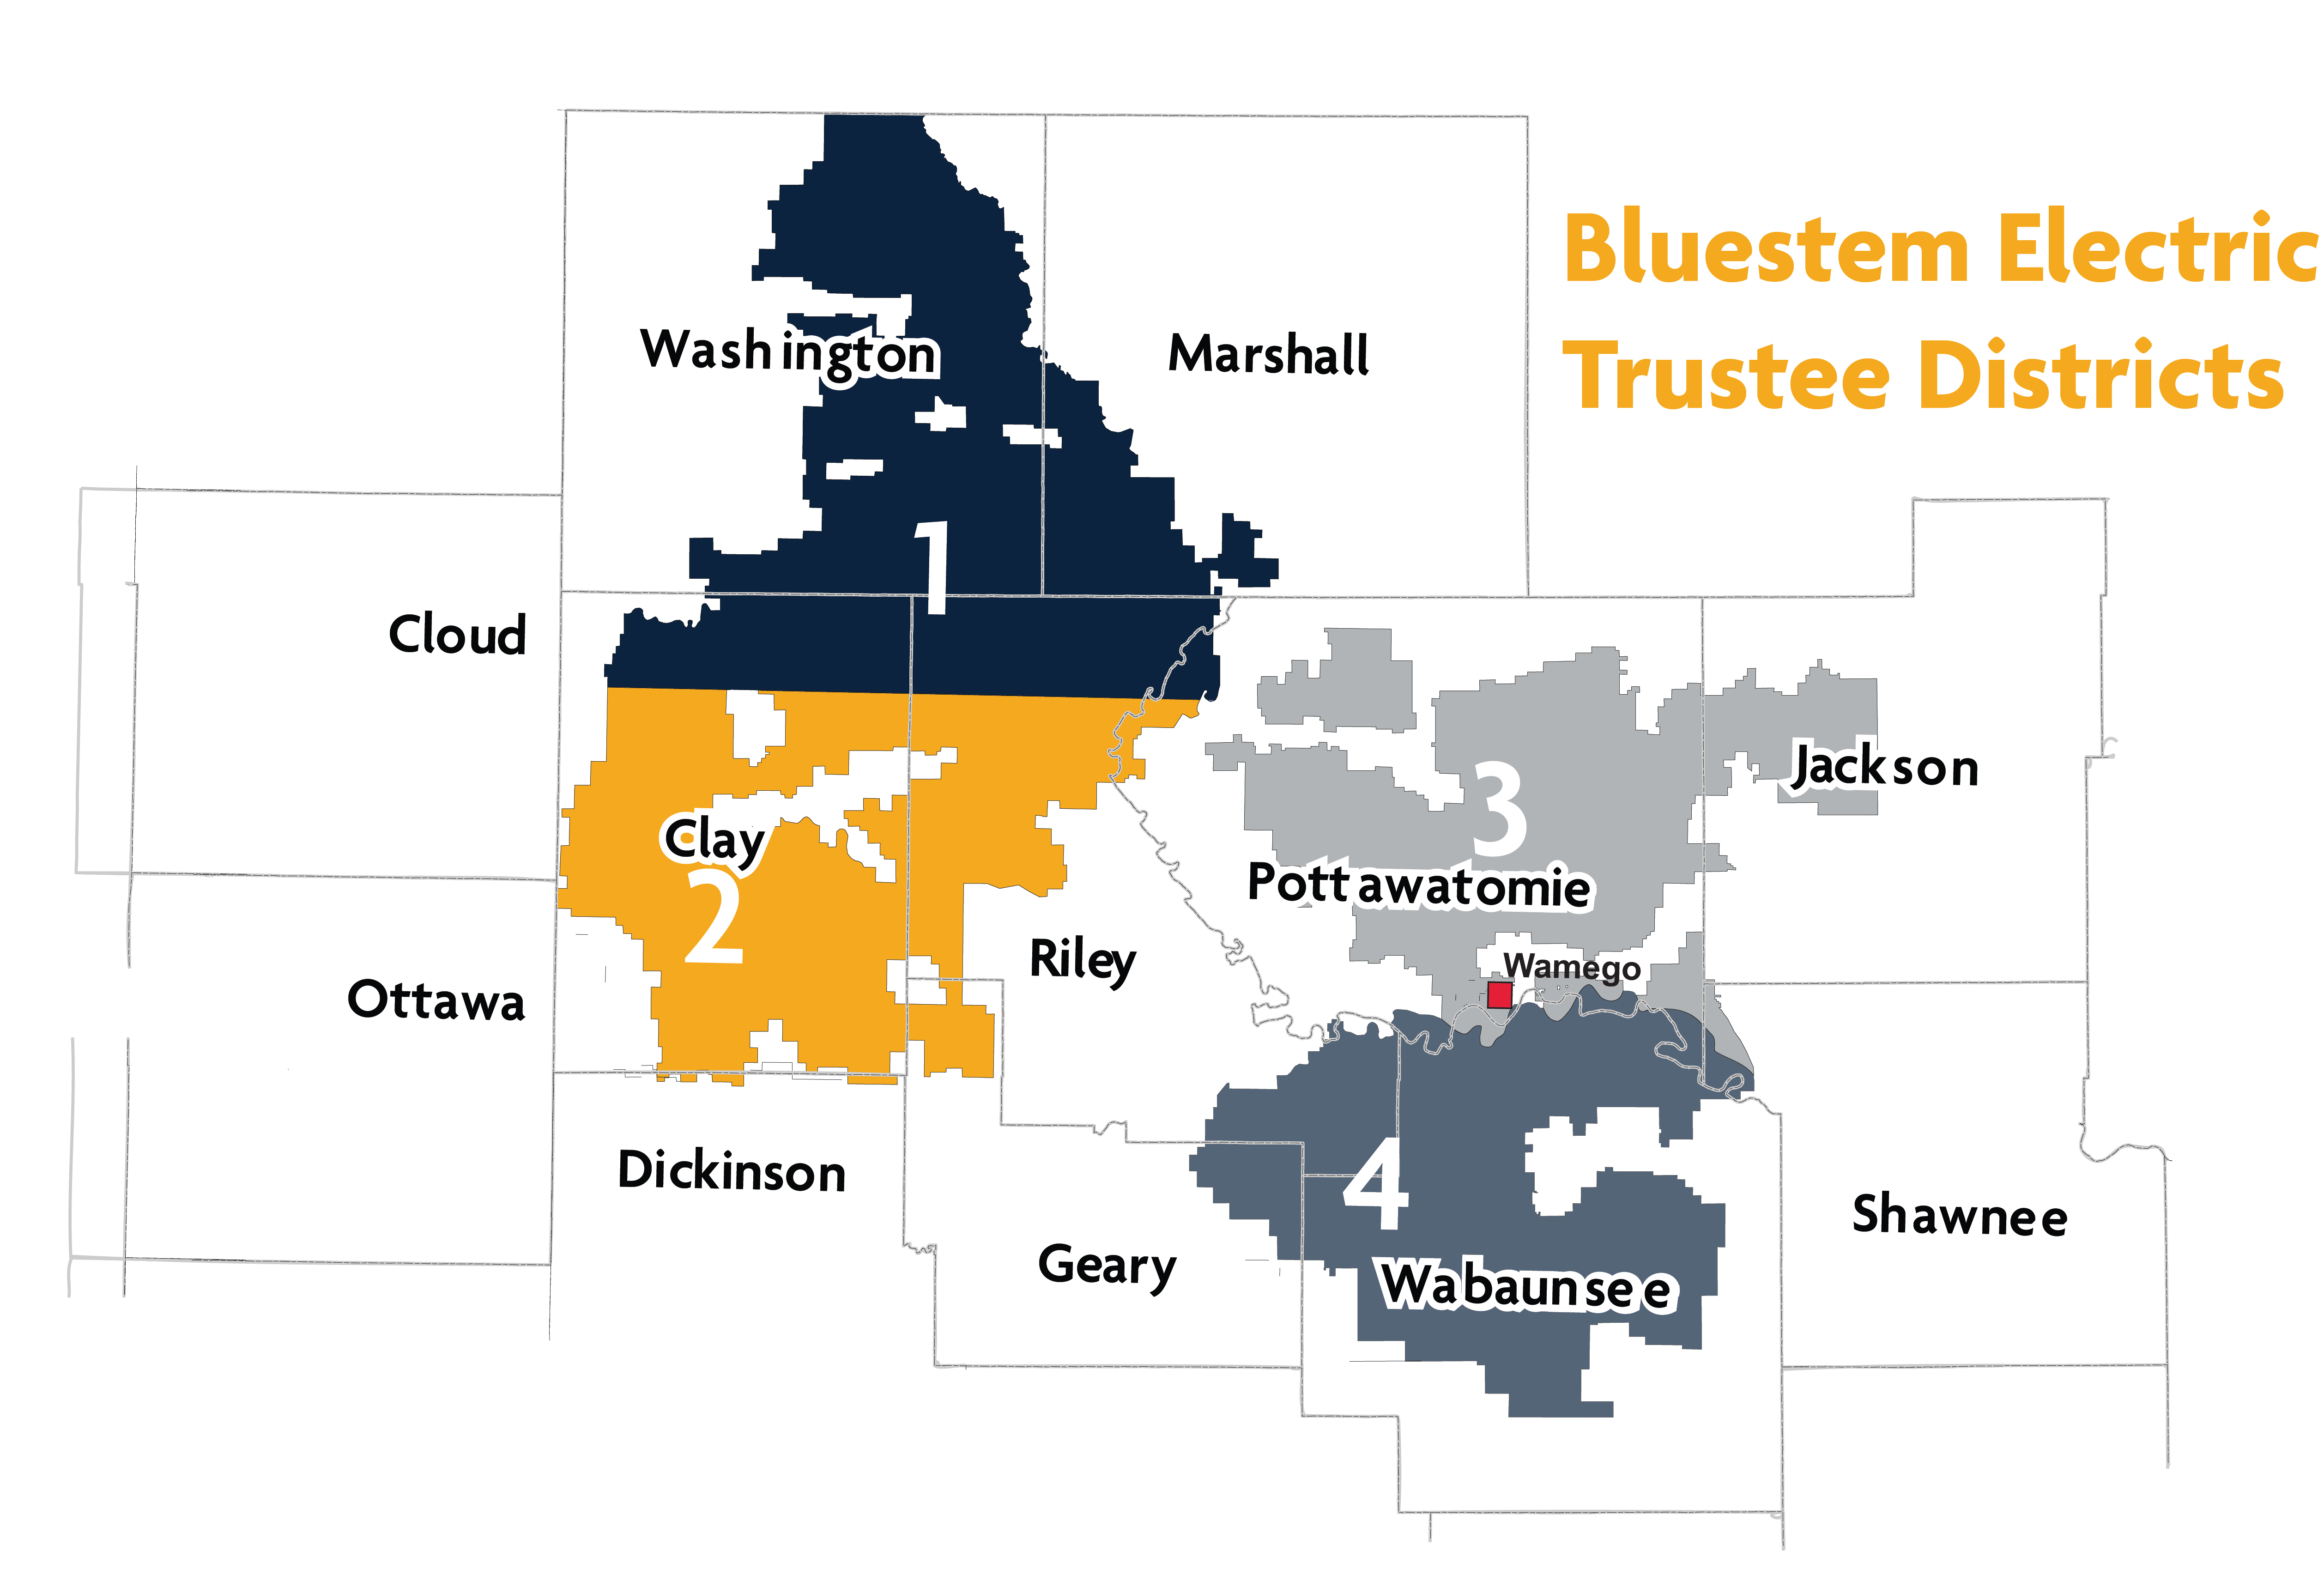 Bluestem Electric Cooperative Trustee Districts Map